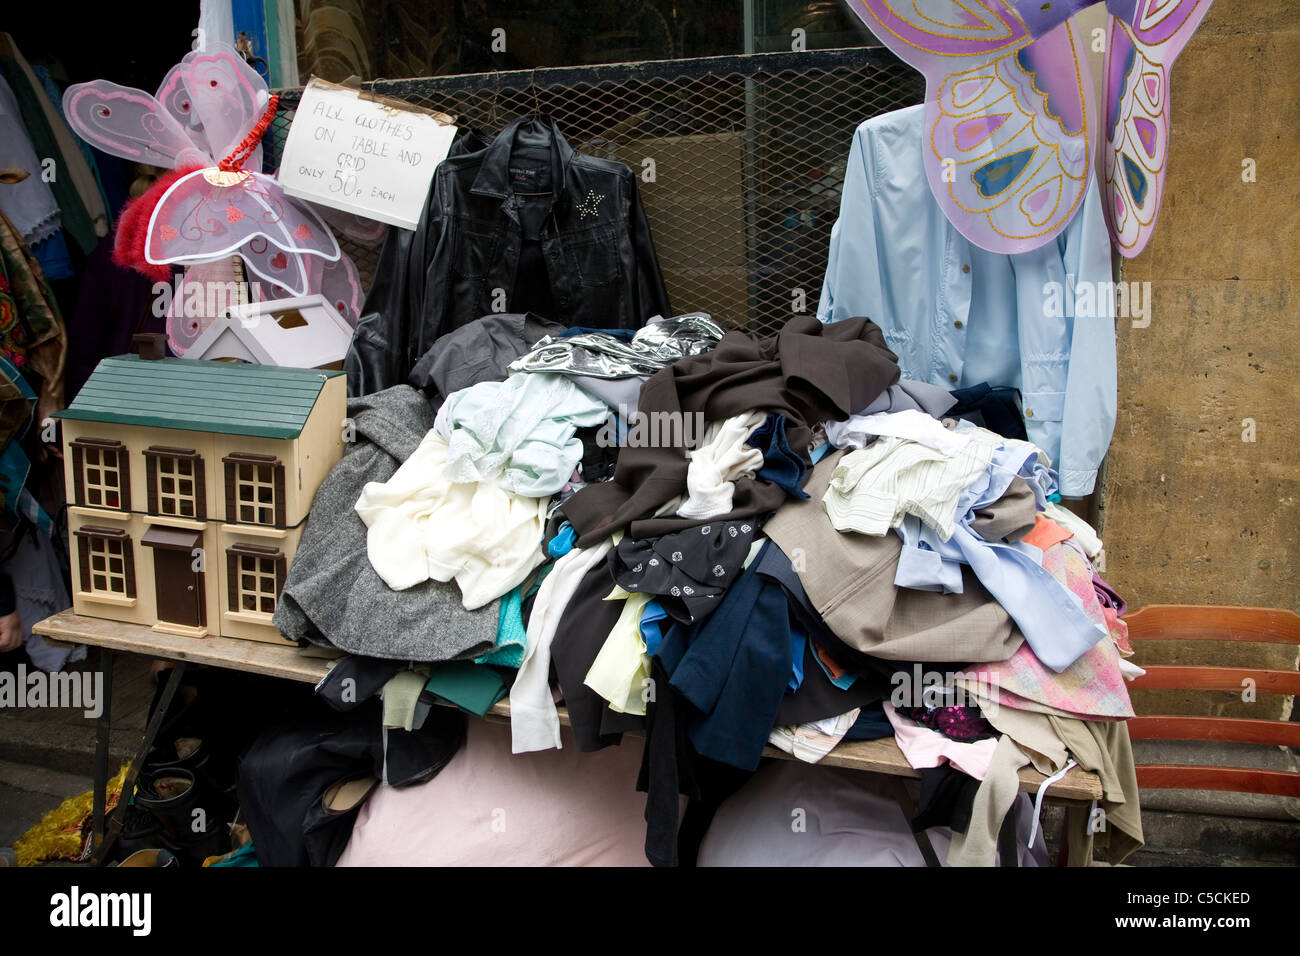 Old clothes and jumble outside charity shop, Walcot, Bath, England - Stock Image